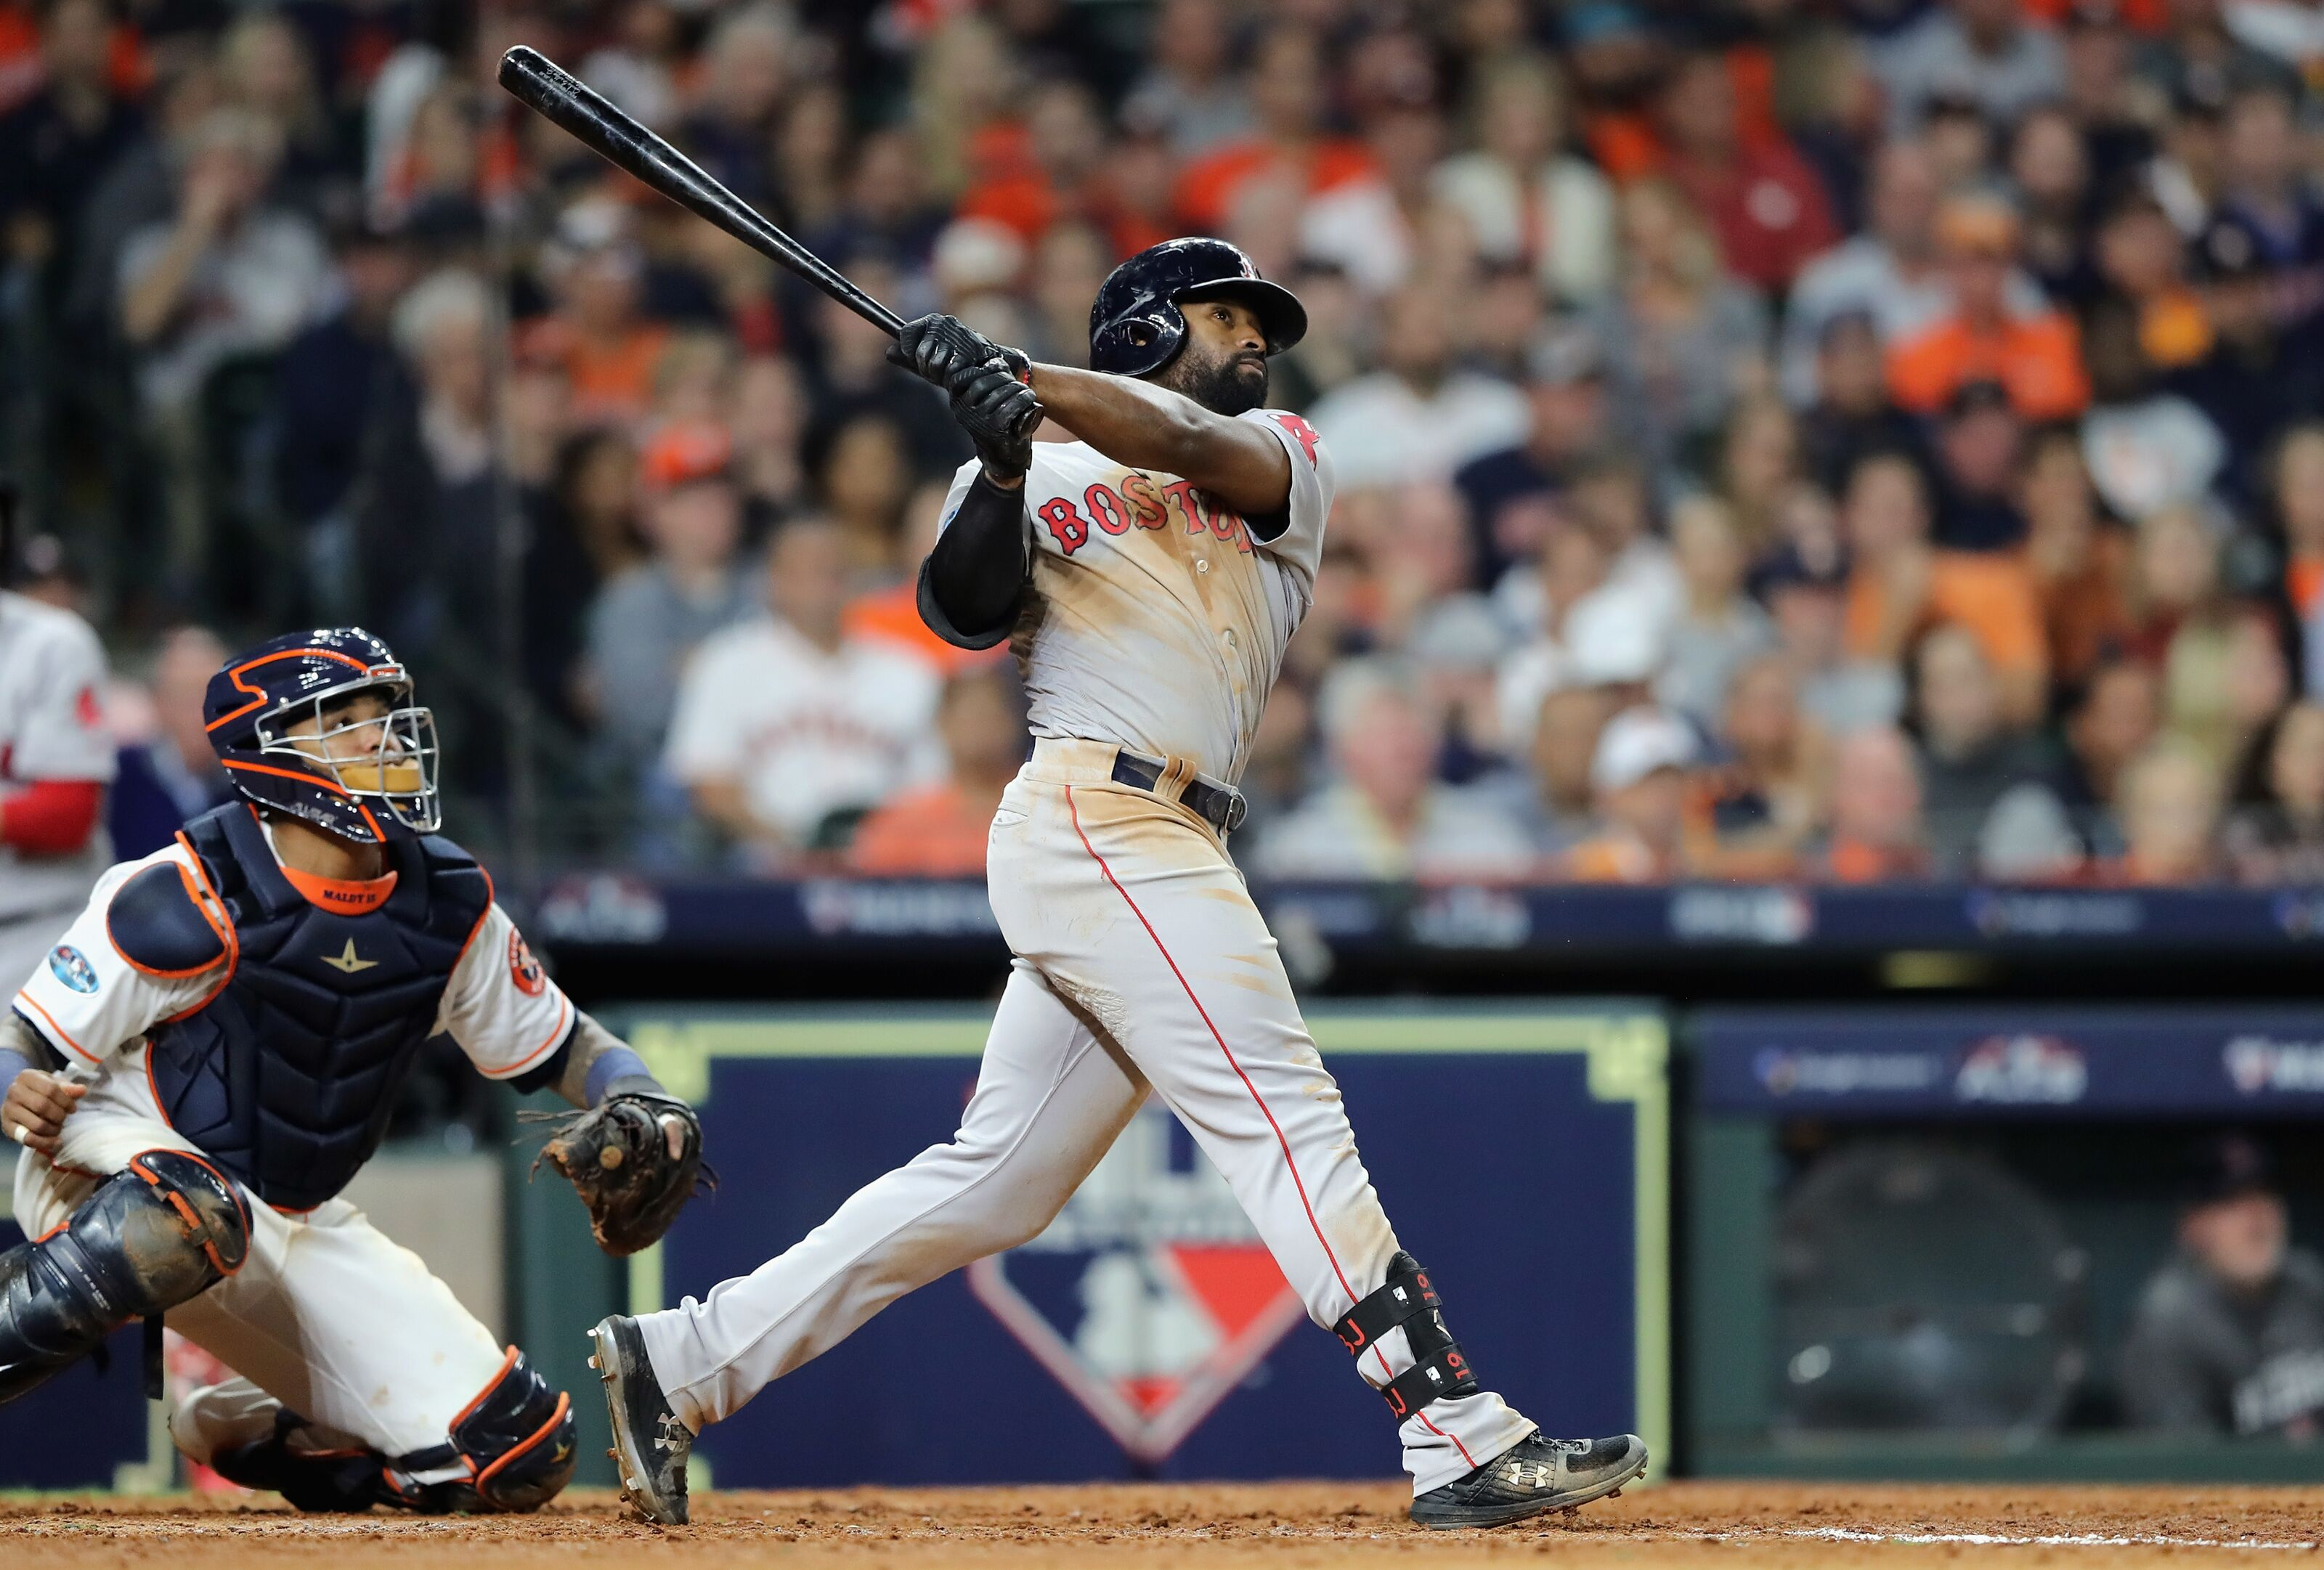 Red Sox outfielder Jackie Bradley Jr.'s future uncertain amidst trade rumors